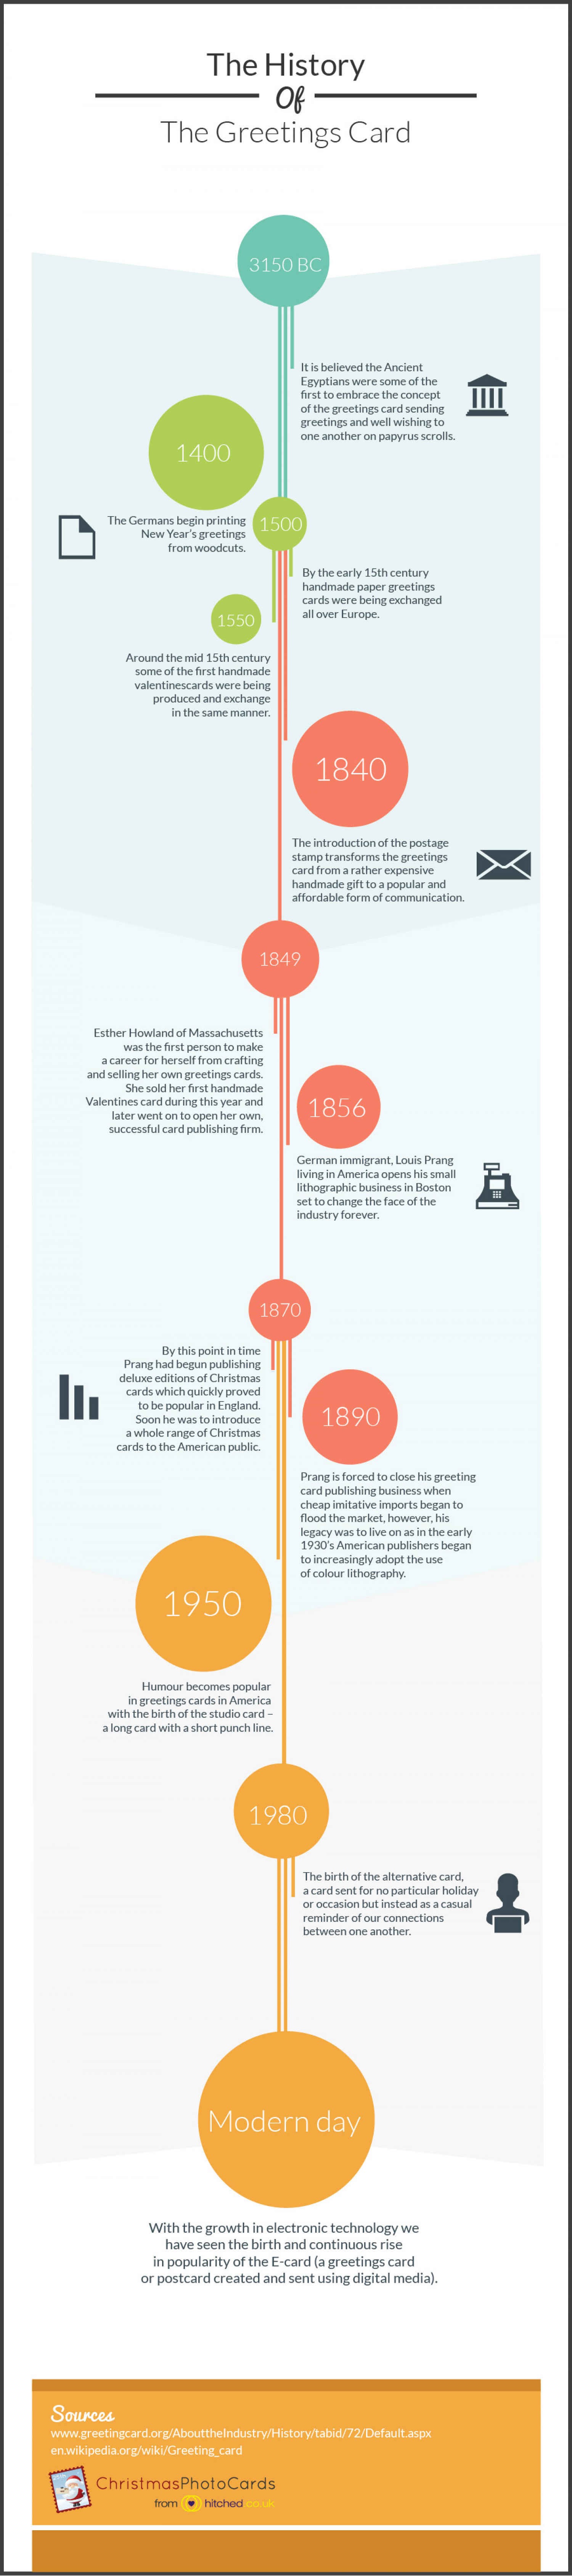 The History Of The Greeting Card Infographic